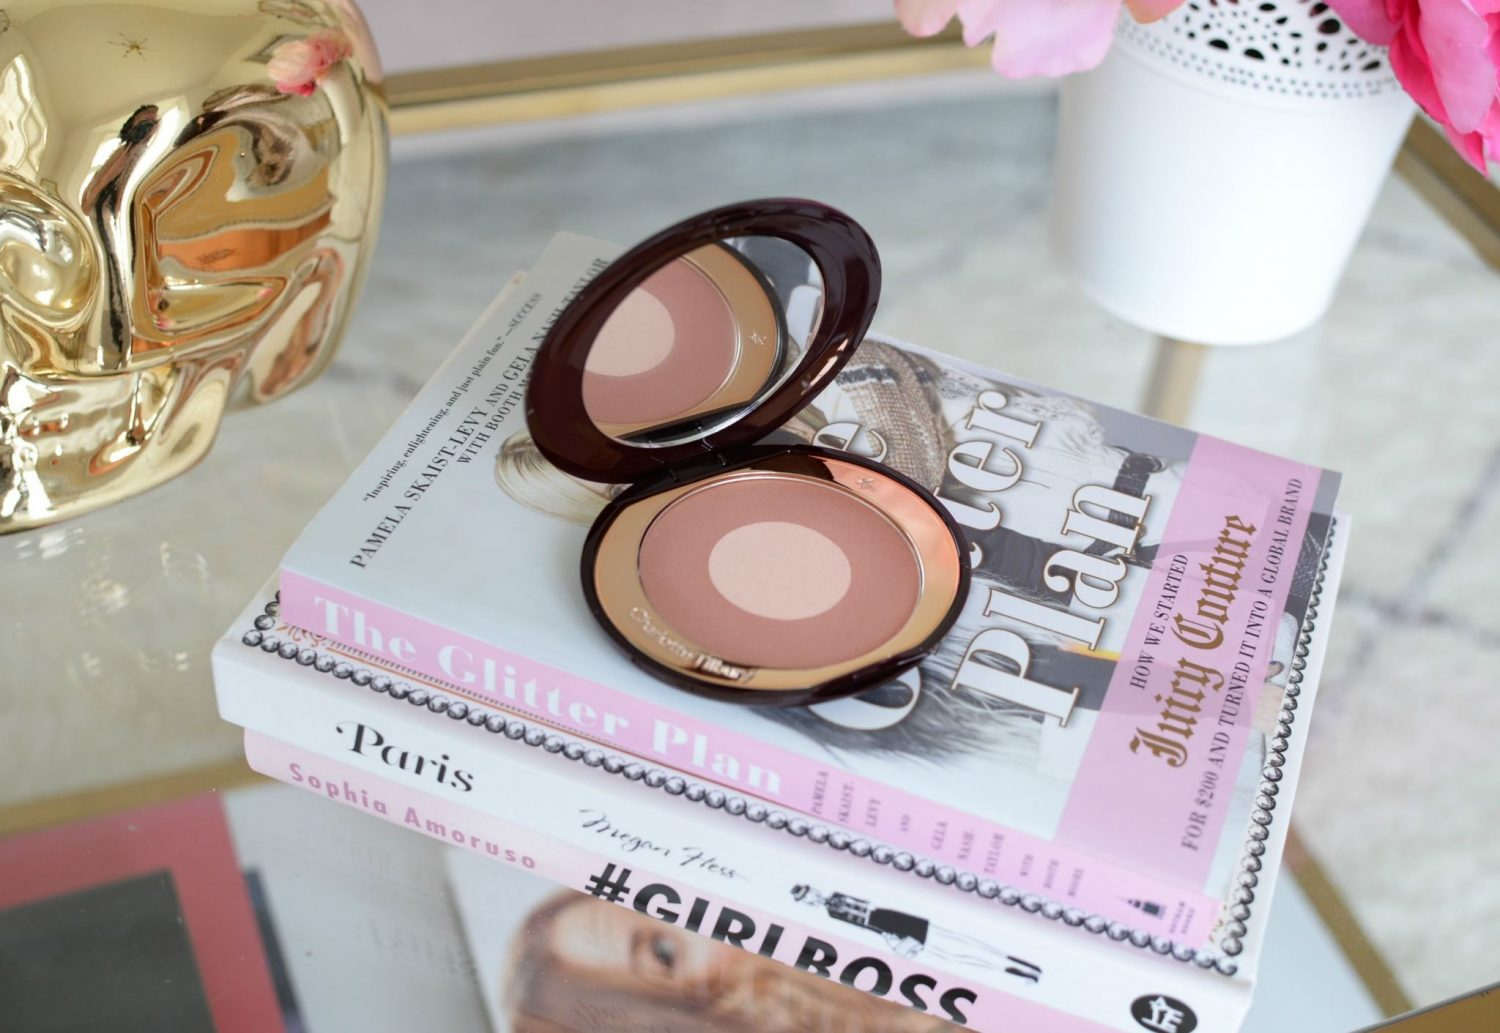 Charlotte Tilbury Cheek To Chic Swish & Glow Blusher in Pillow Talk